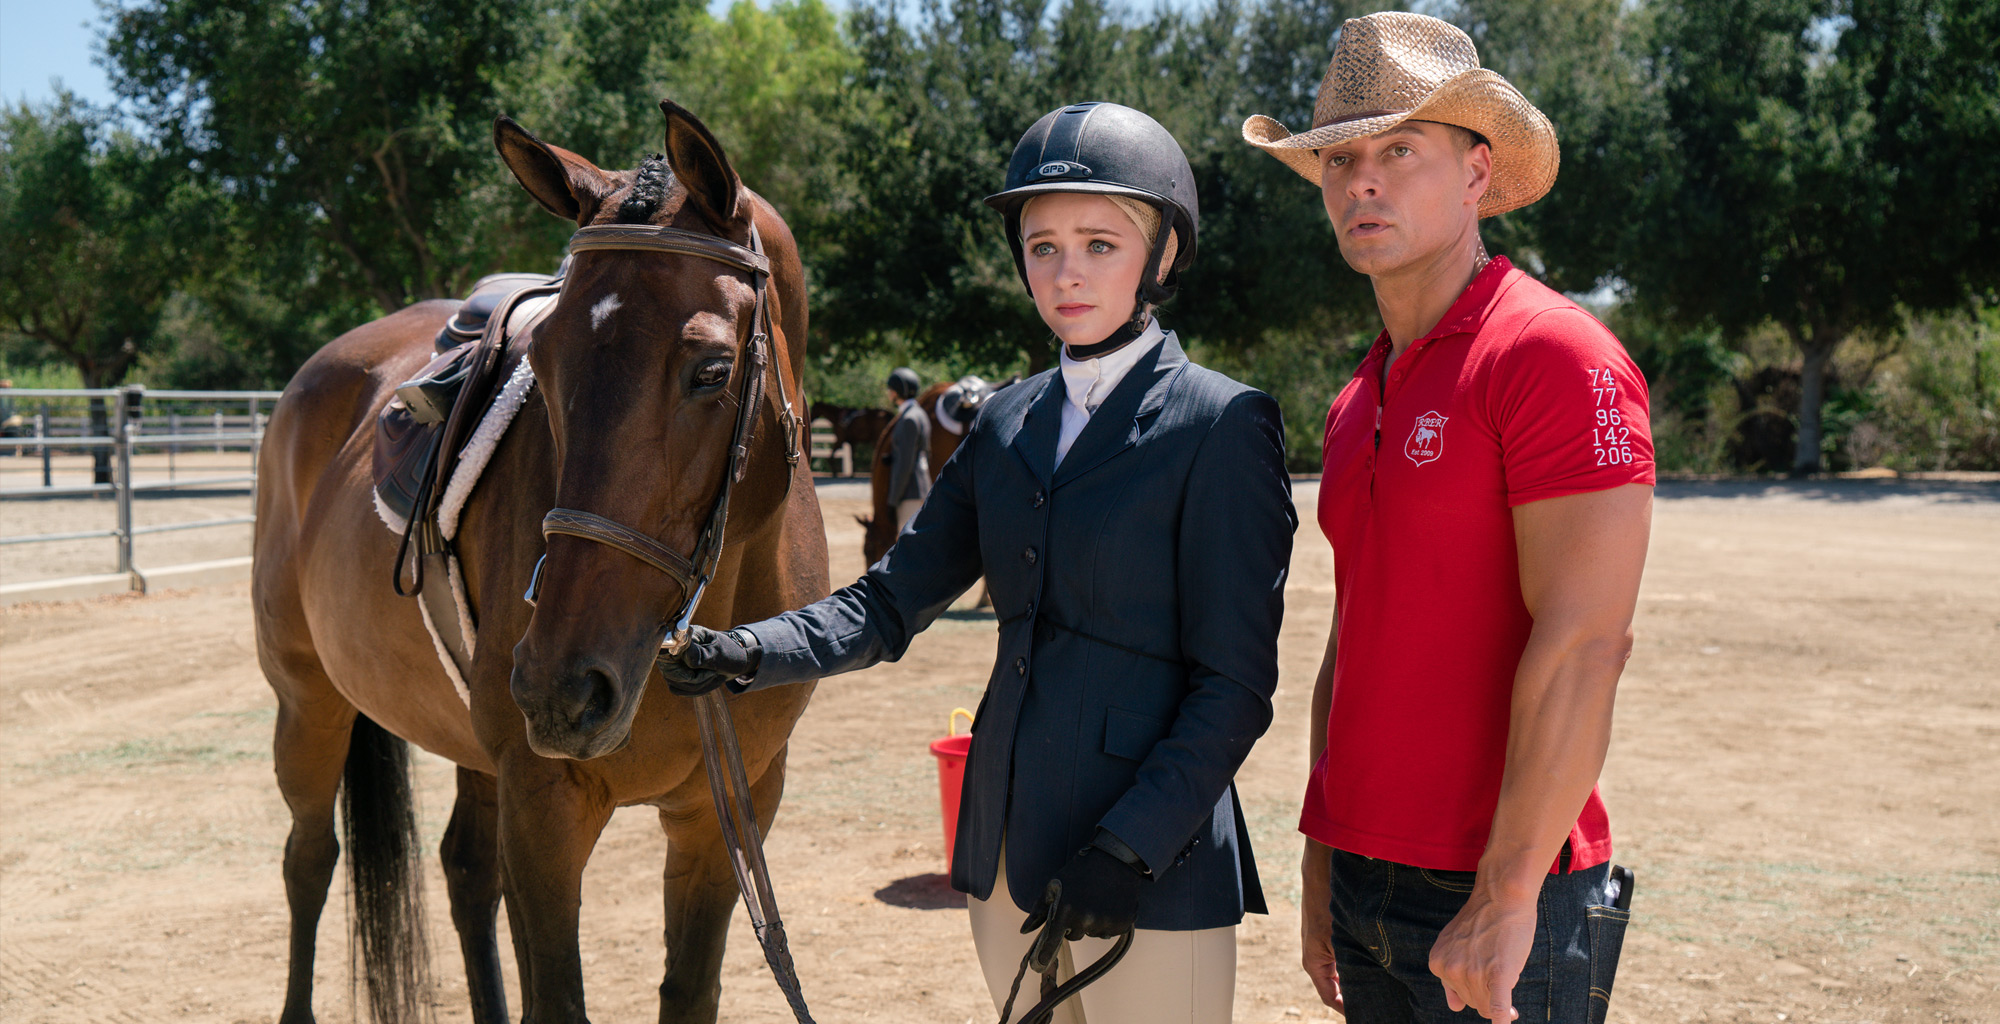 Greer Grammer and Joey Lawrence in Emma's Chance